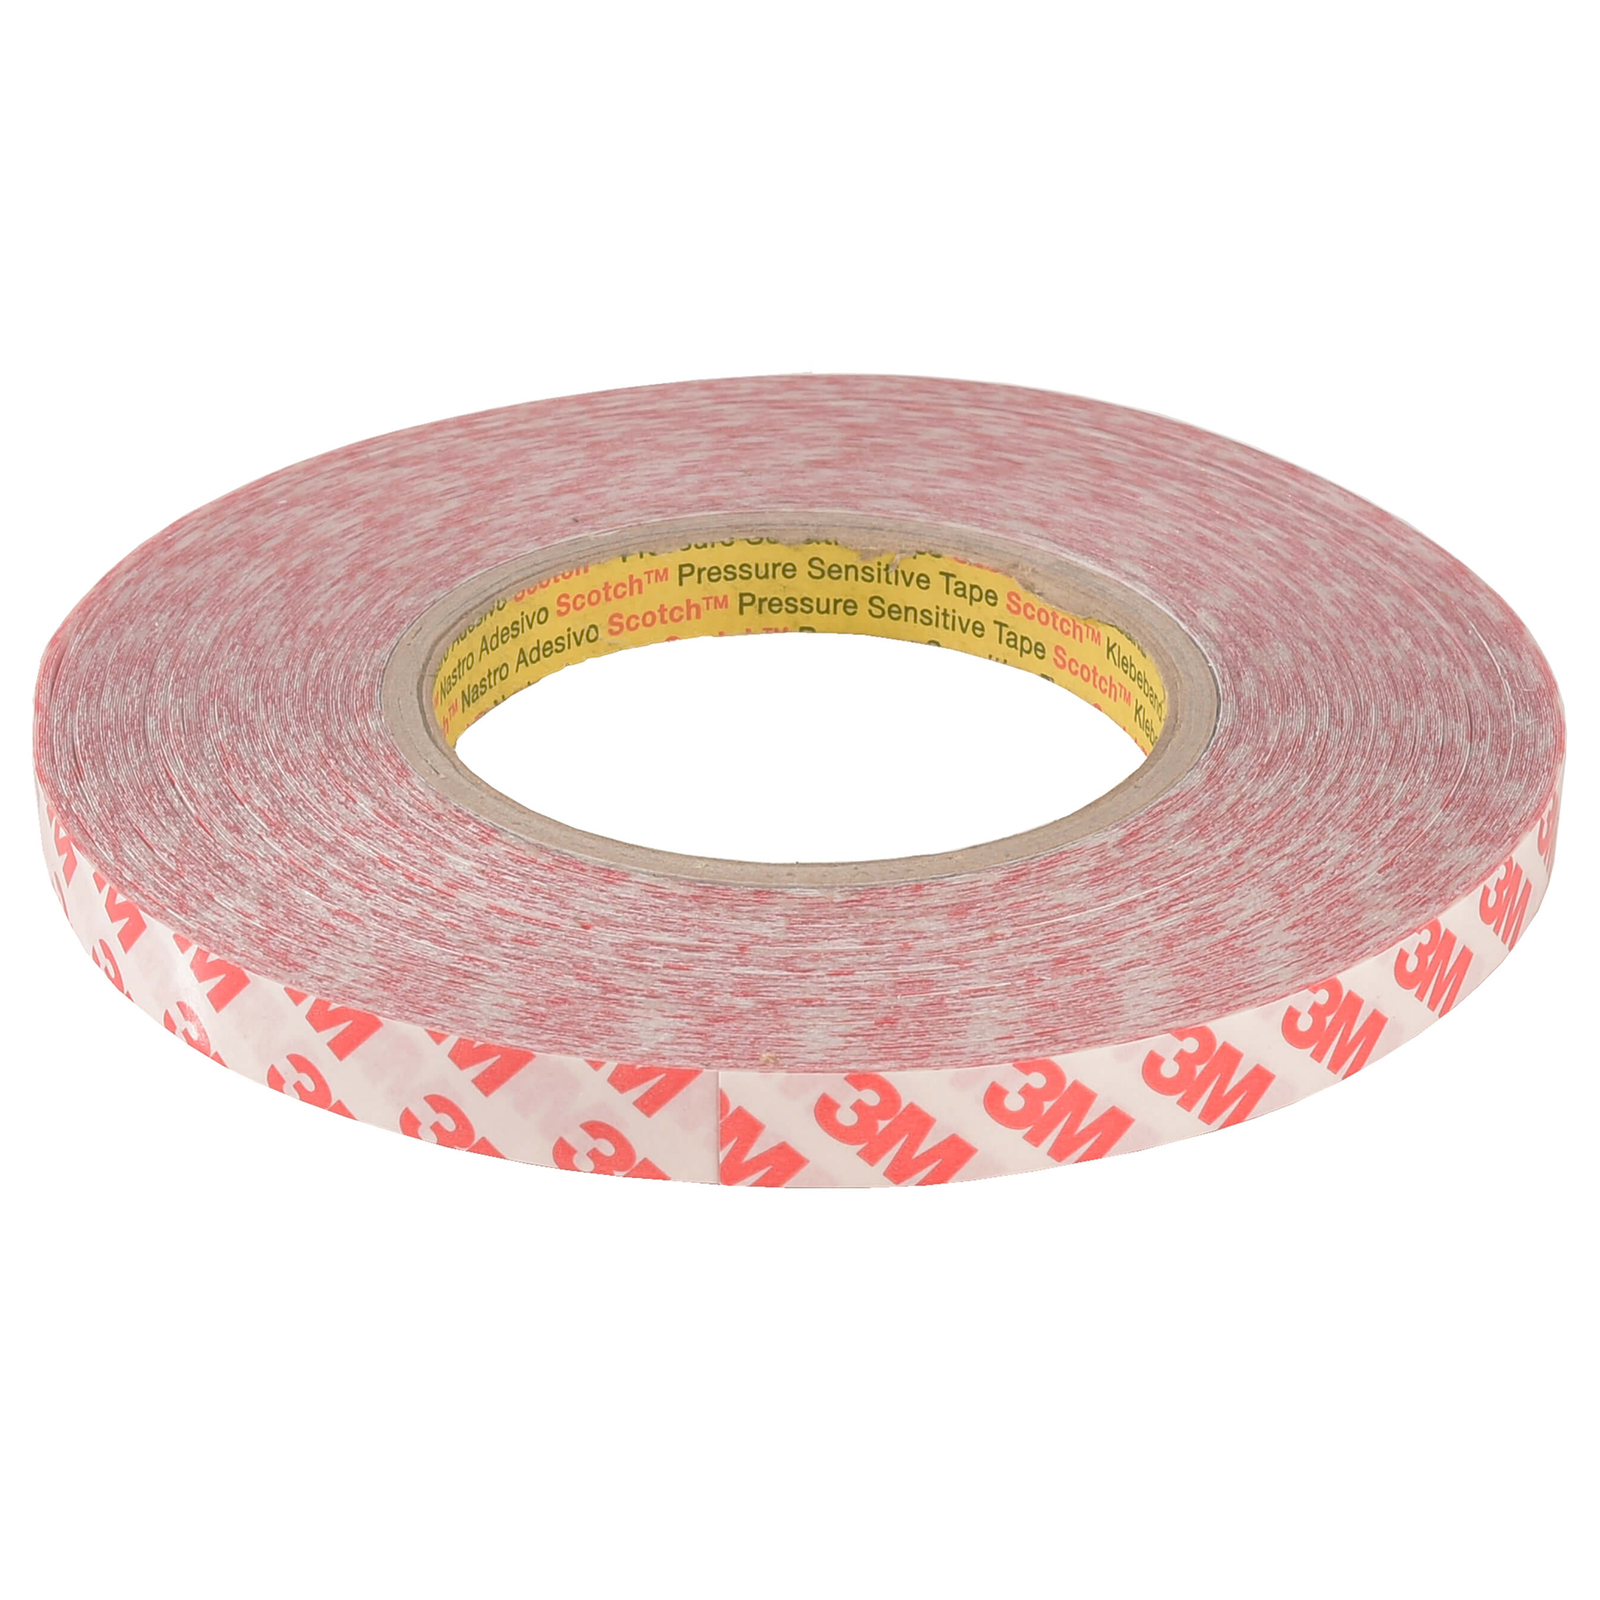 Coil double-sided tape 3M 50 metres profile heavy-duty adhesive LED strips 15mm